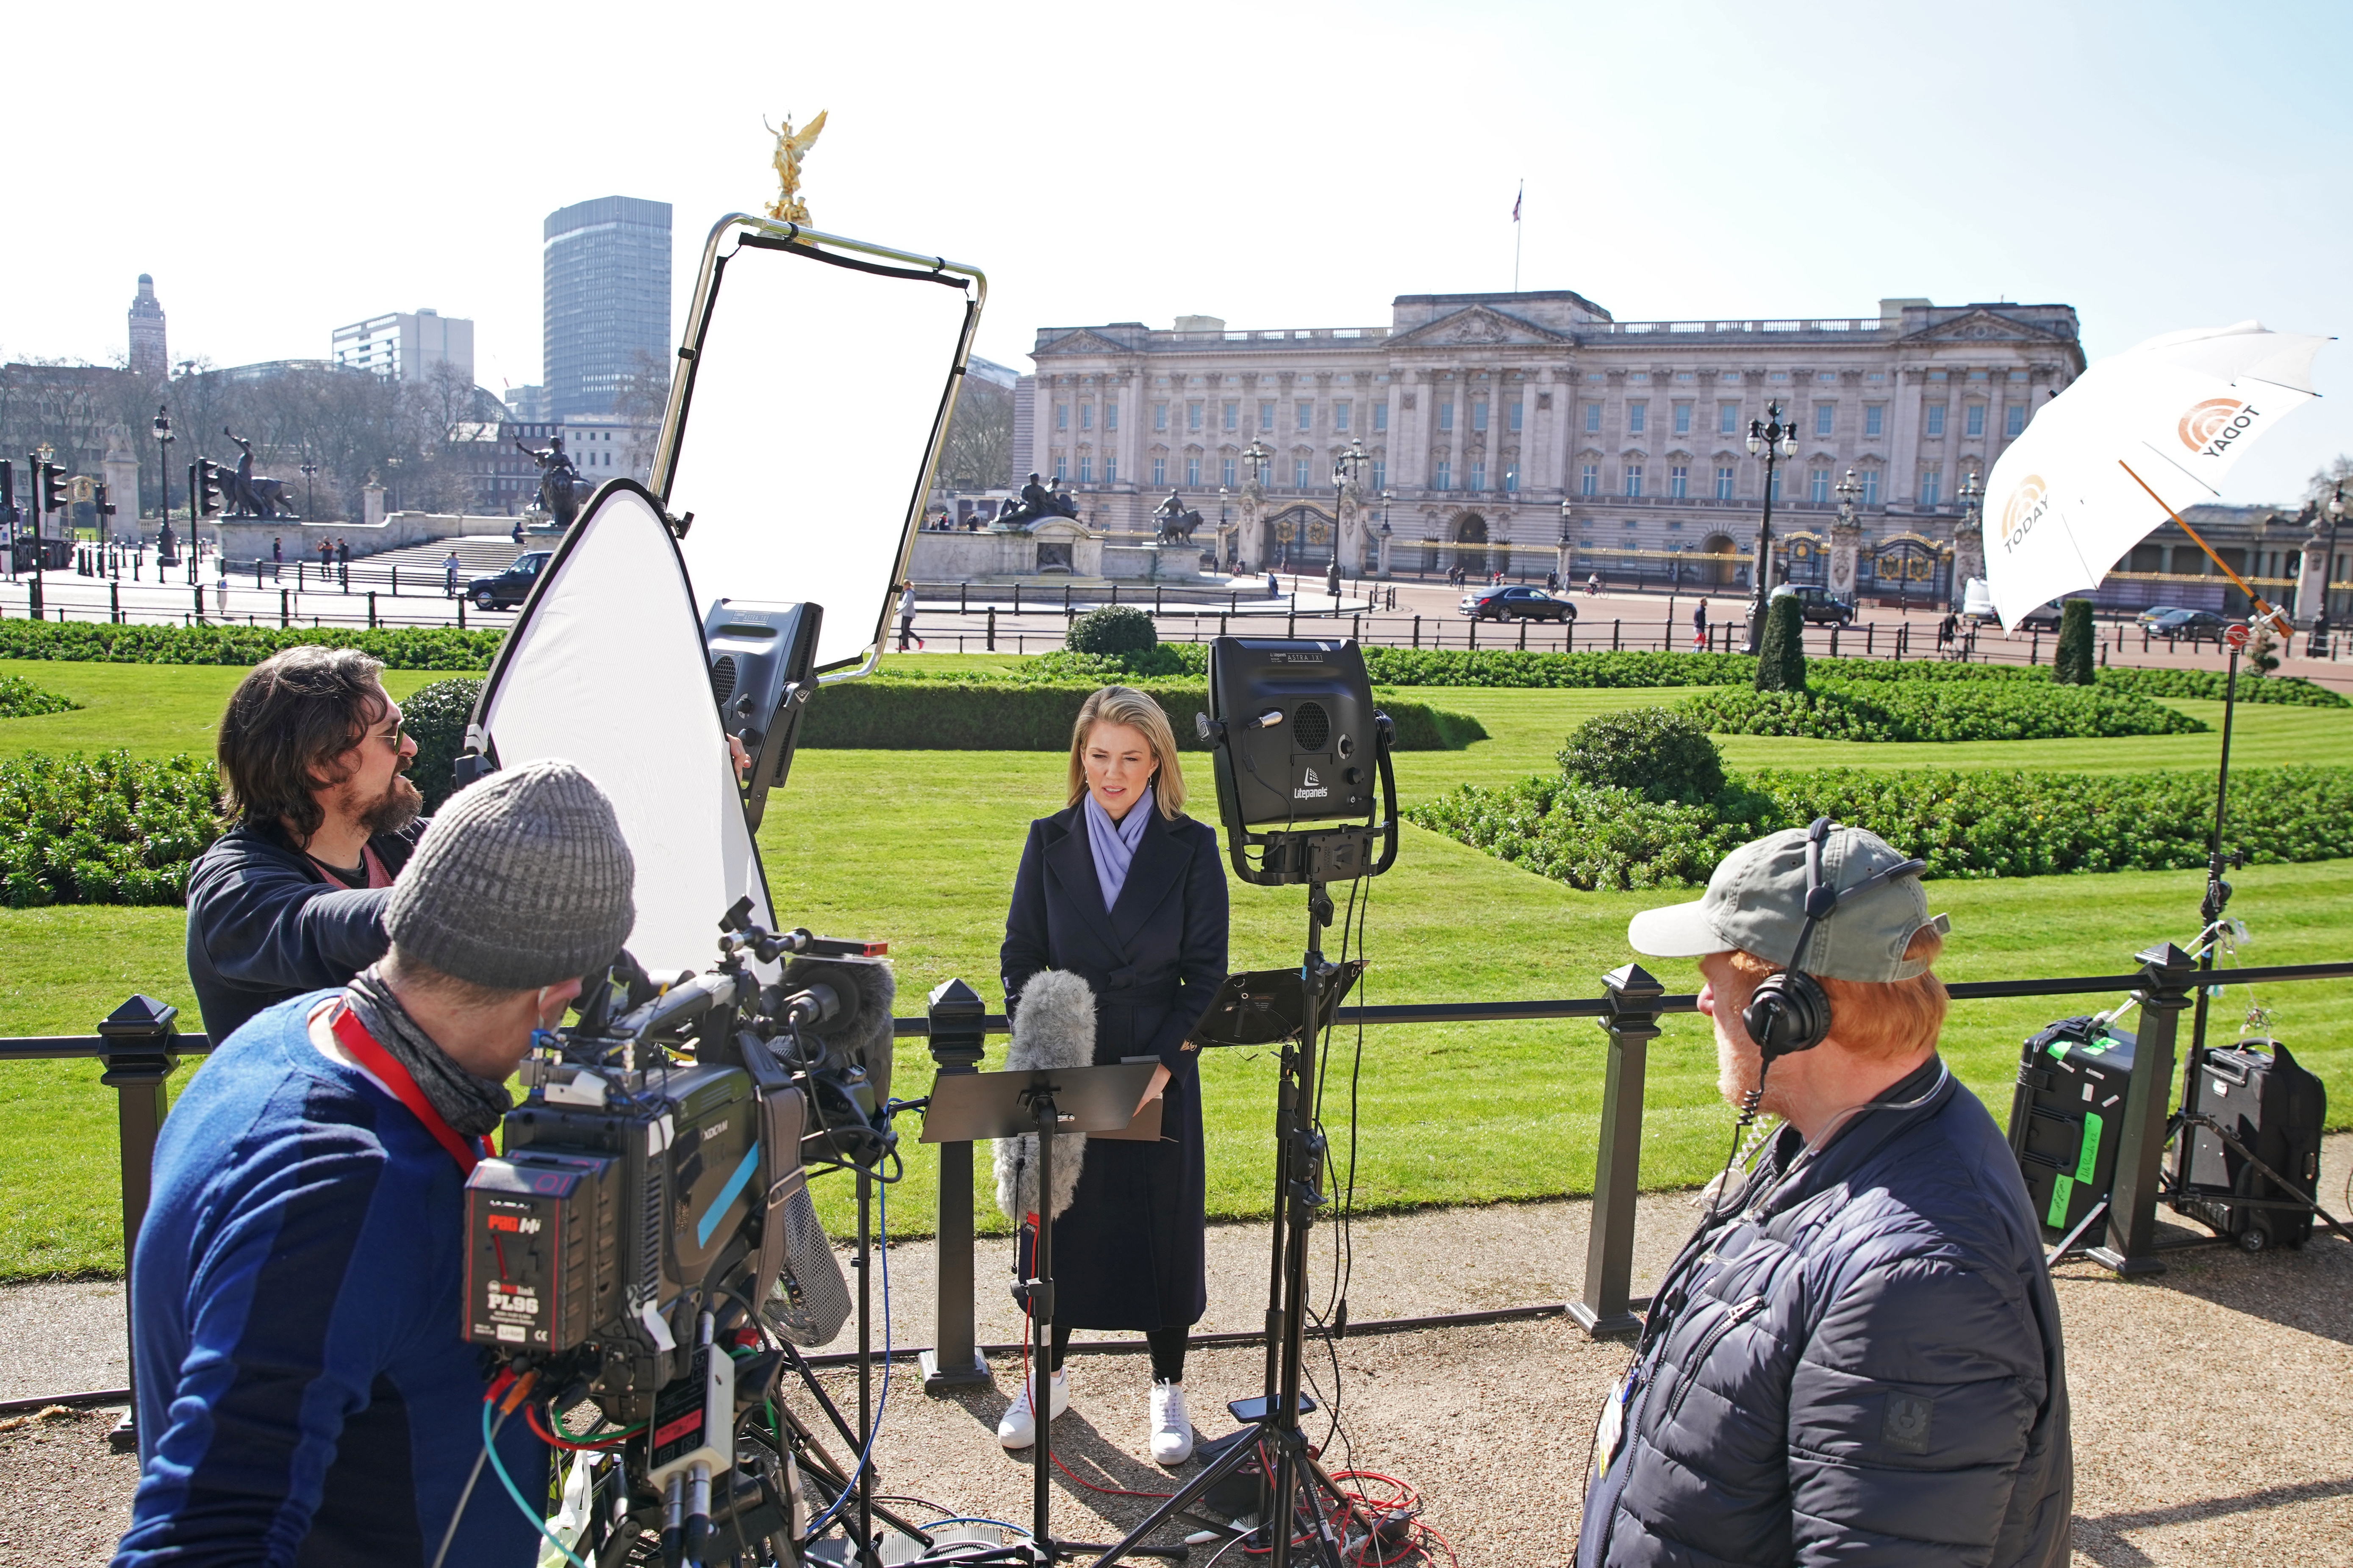 <p>Members of the media outside Buckingham Palace in London the day after the Duke and Duchess of Sussex's interview with Oprah Winfrey was broadcast on ITV in the UK. Picture date: Tuesday March 9, 2021.</p>